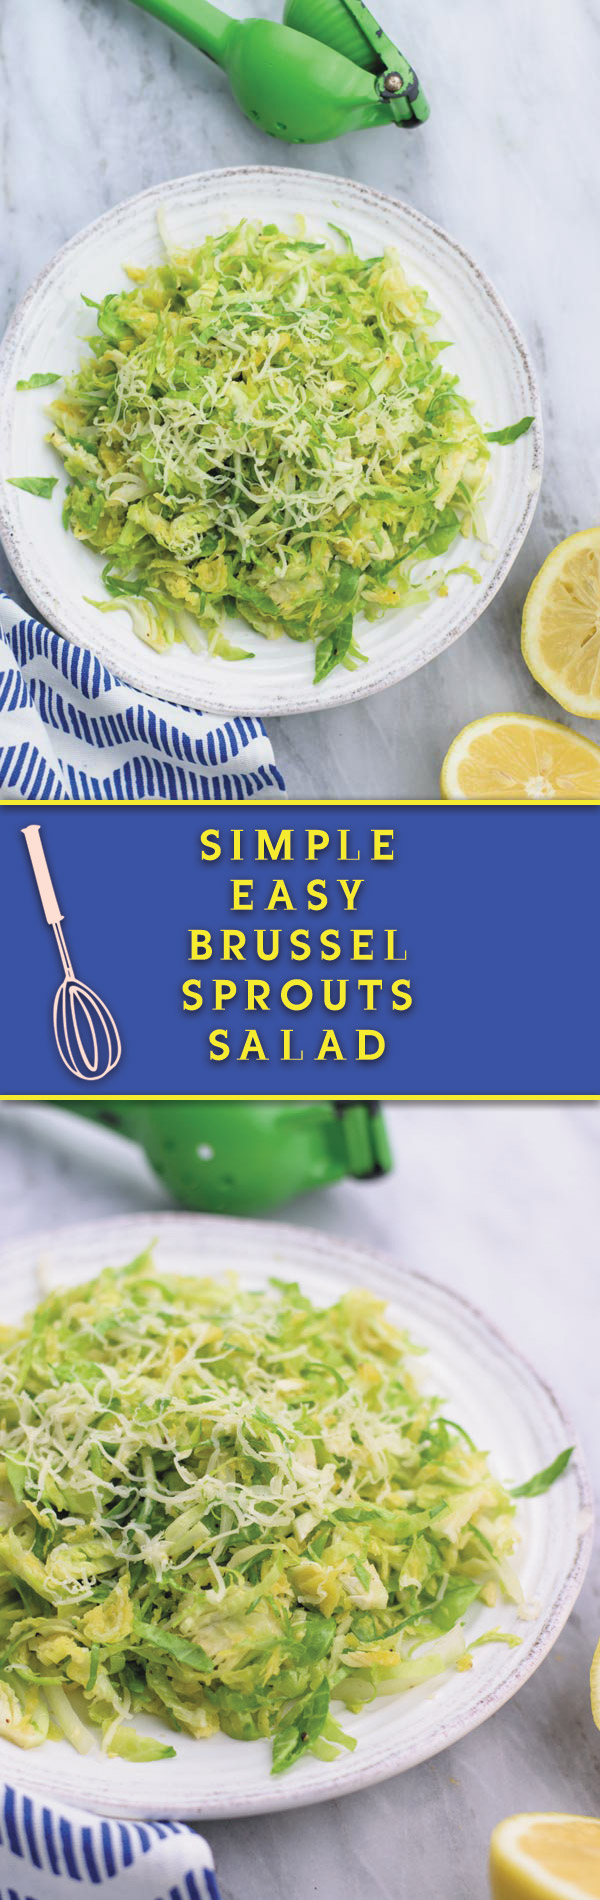 simple easy brussel sprouts salad - a REALLY simple yet ADDICTING crunchy brussel sprouts salad with tangy lemon juice vinaigrette and gruyere!